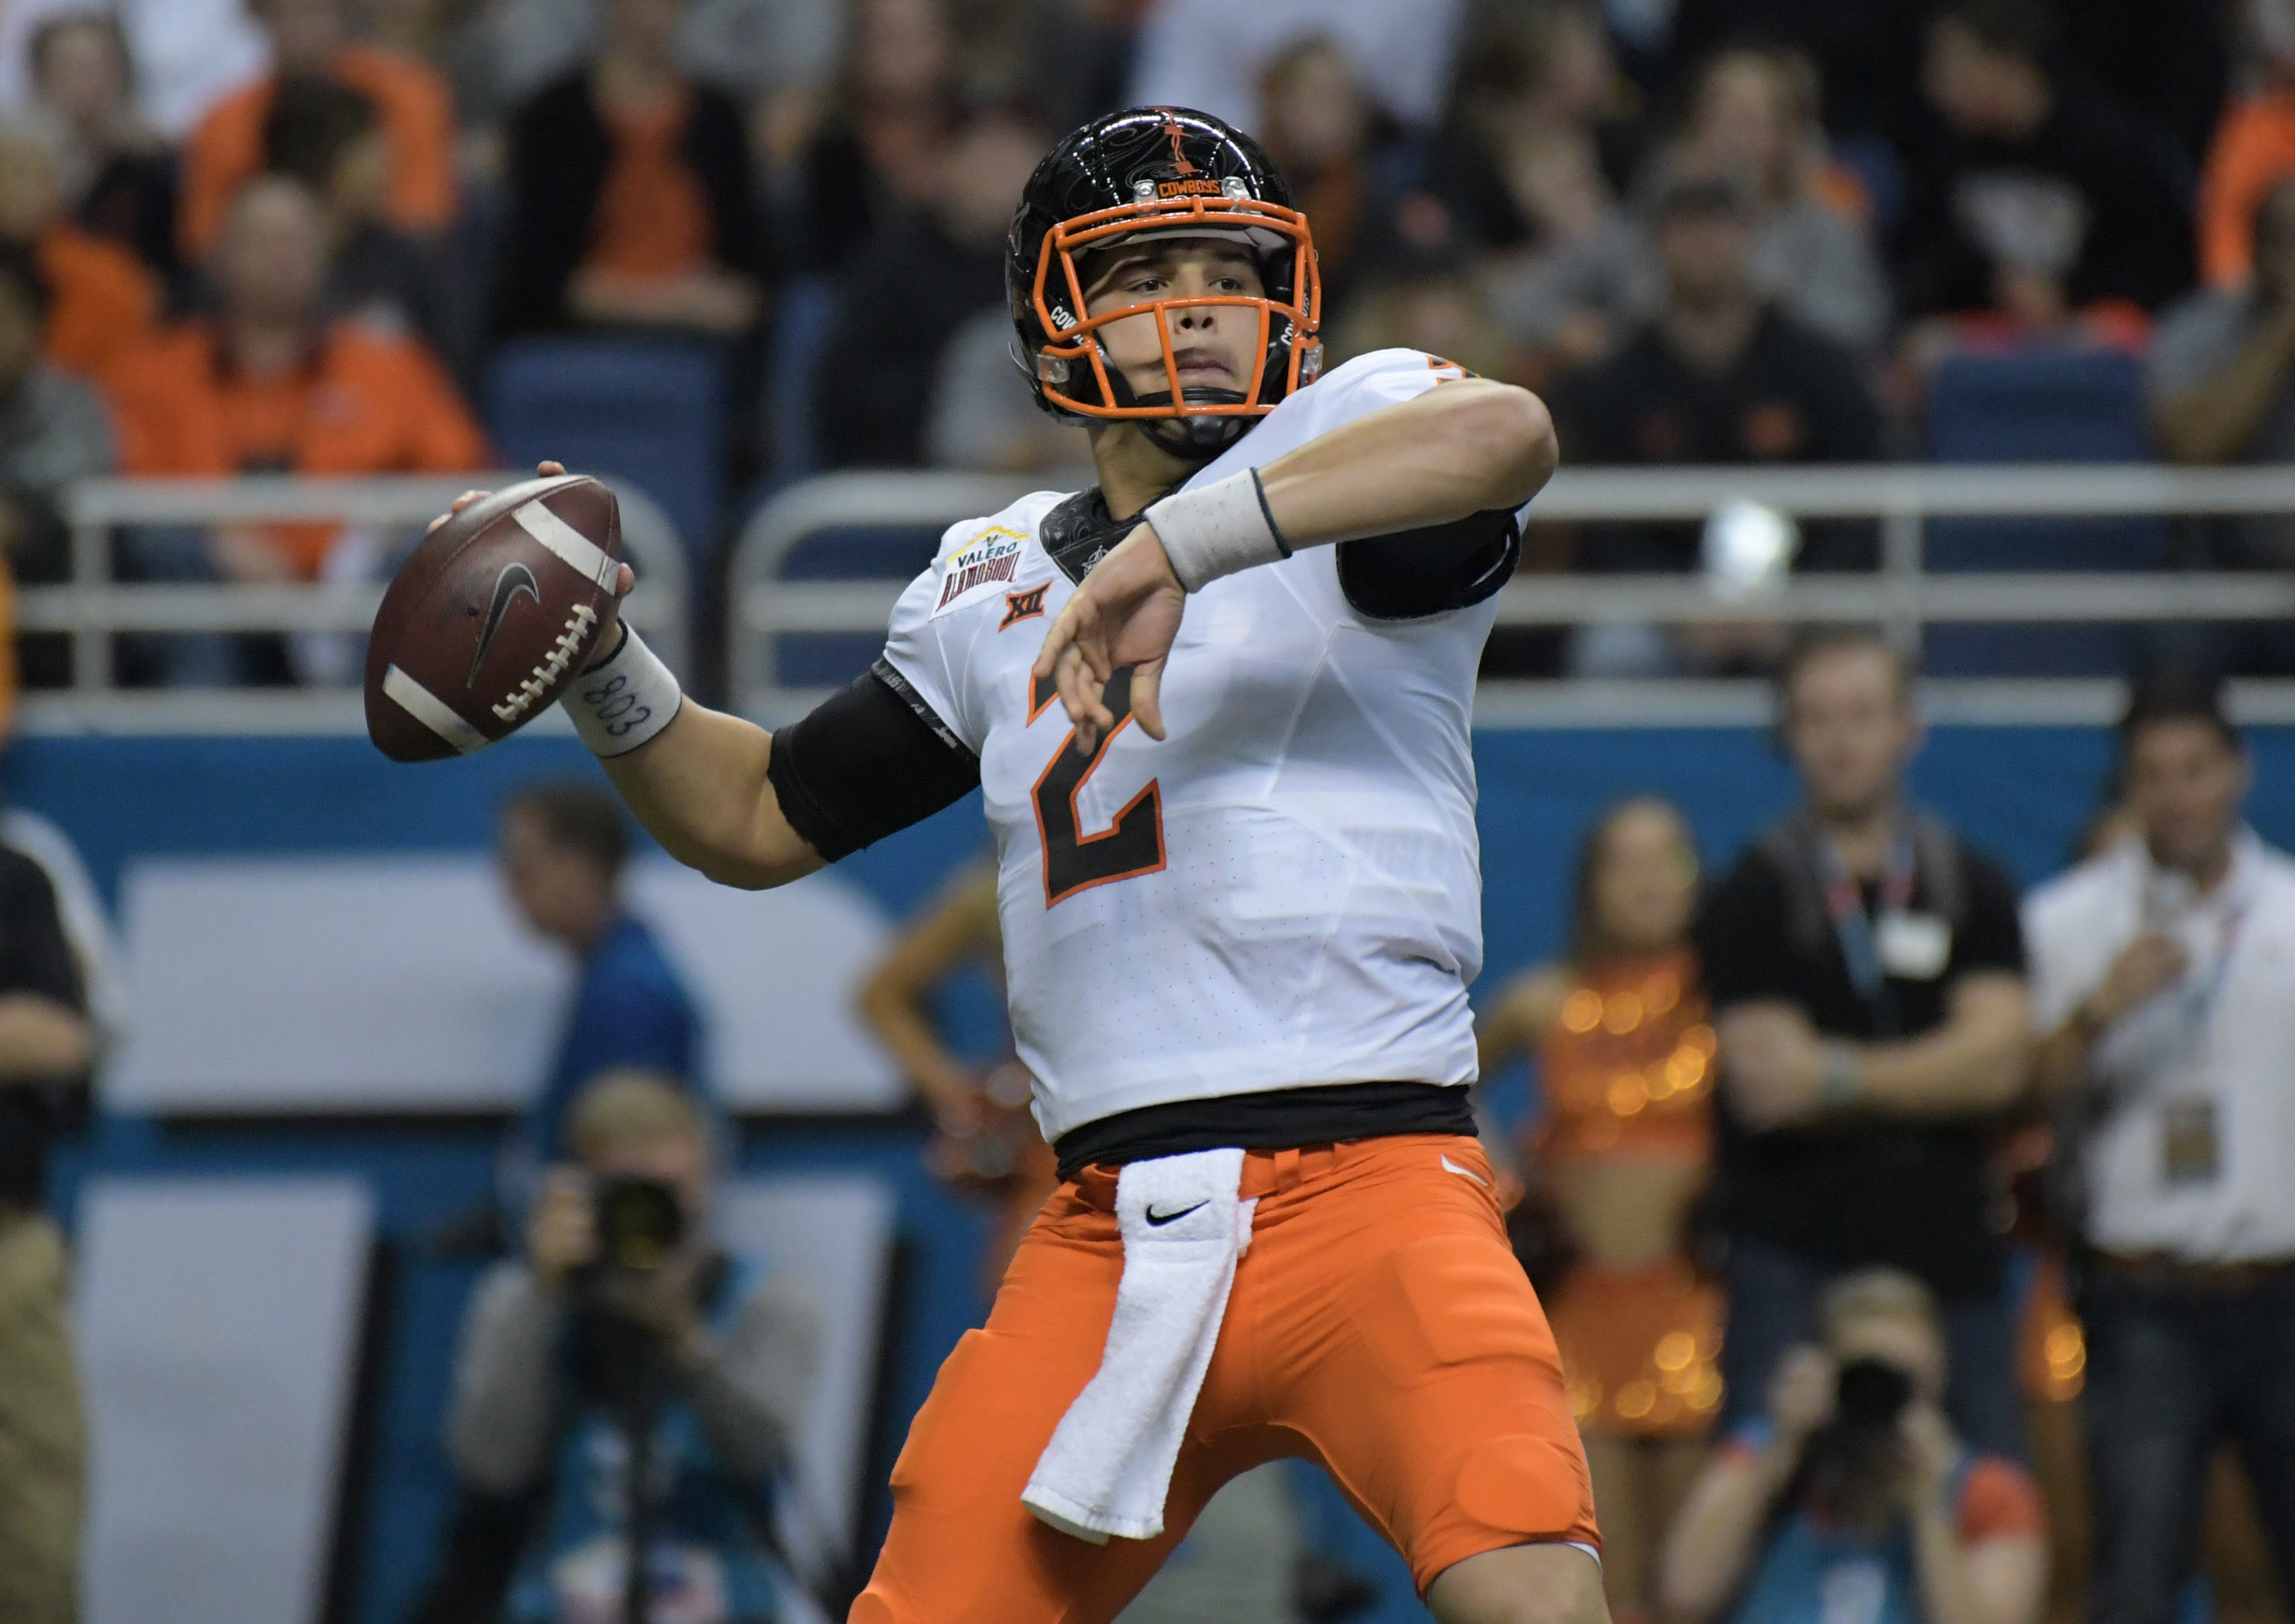 promo code 8ff92 24f8a Mason Rudolph helps out at Manning Passing Academy - Cowboys ...